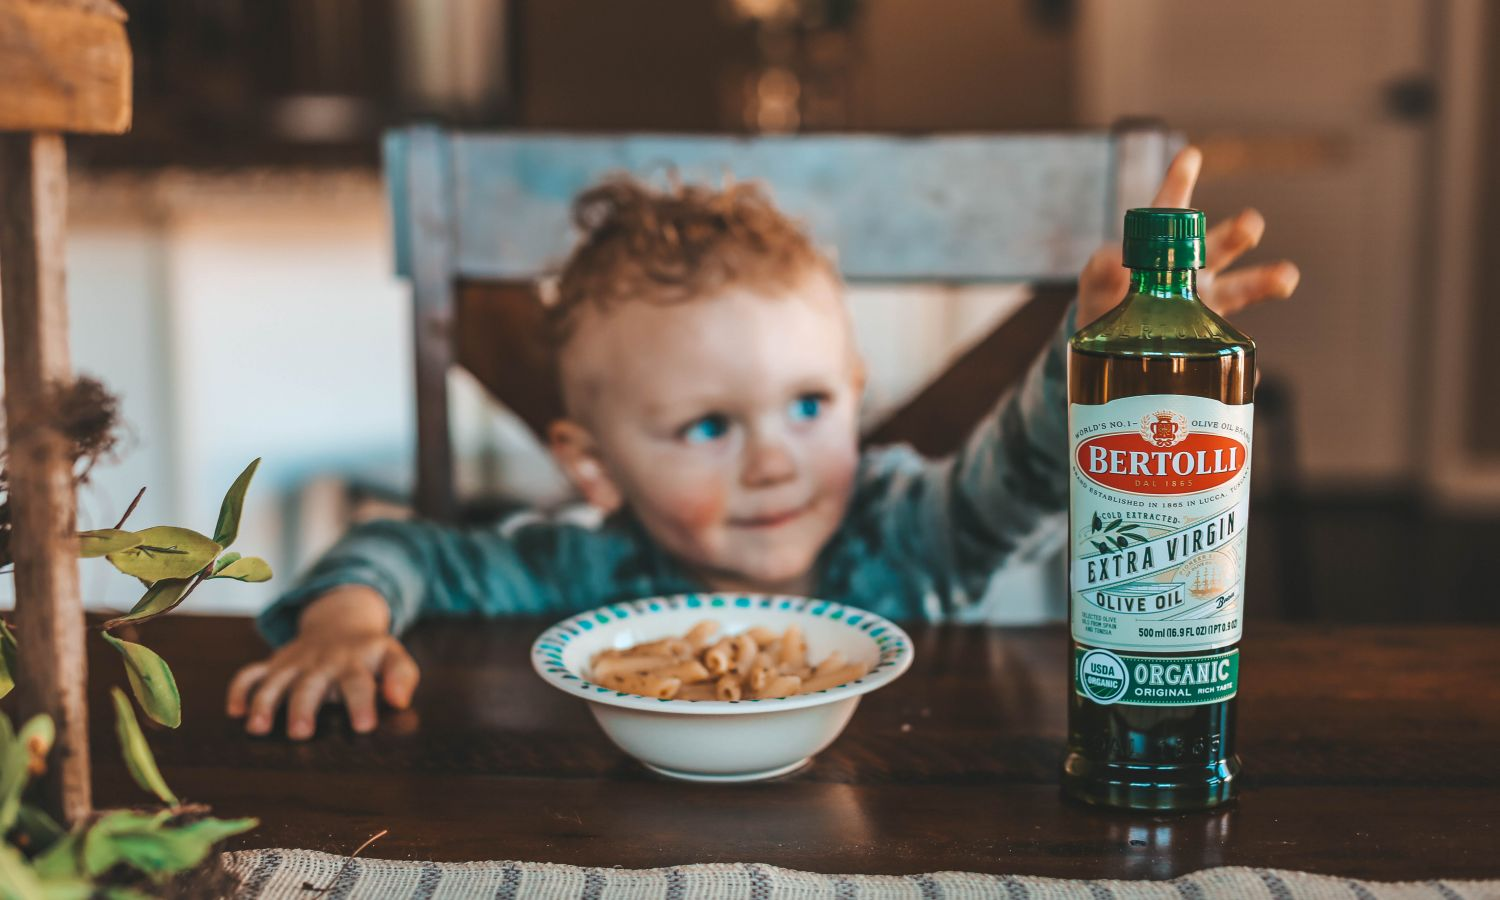 Bertolli Extra Virgin Olive Oil Bottle, a bowl of pasta, a child sitting in a chair representing Quality extra virgin olive oil